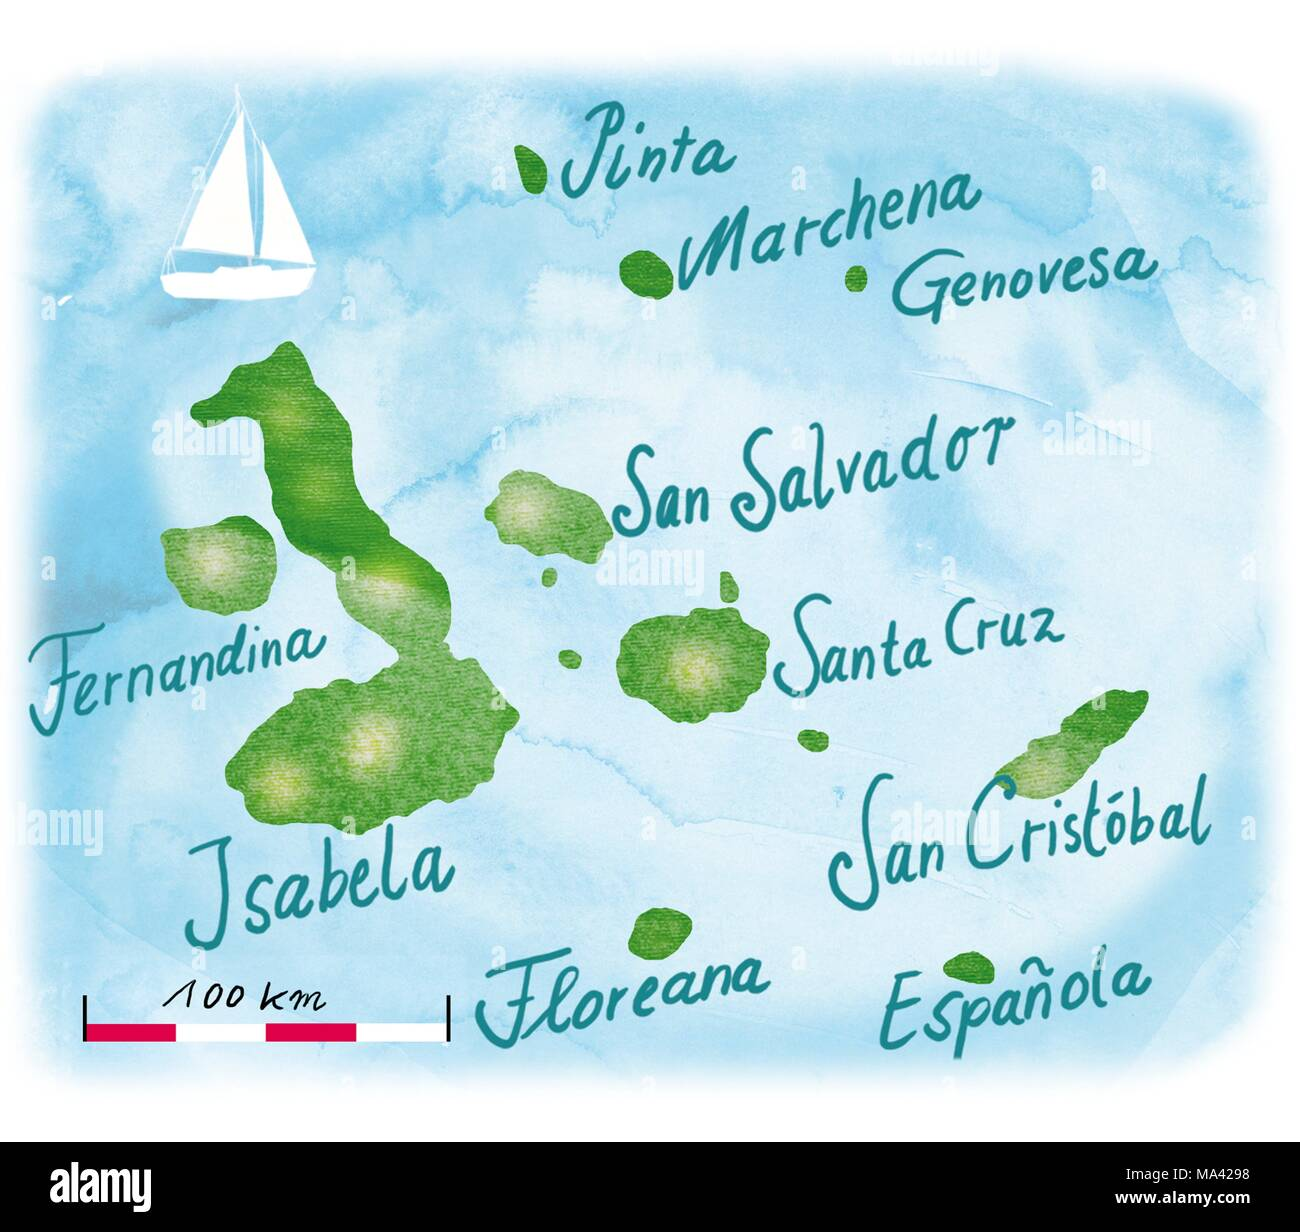 A map of the Galapagos islands in the East Pacific - Stock Image